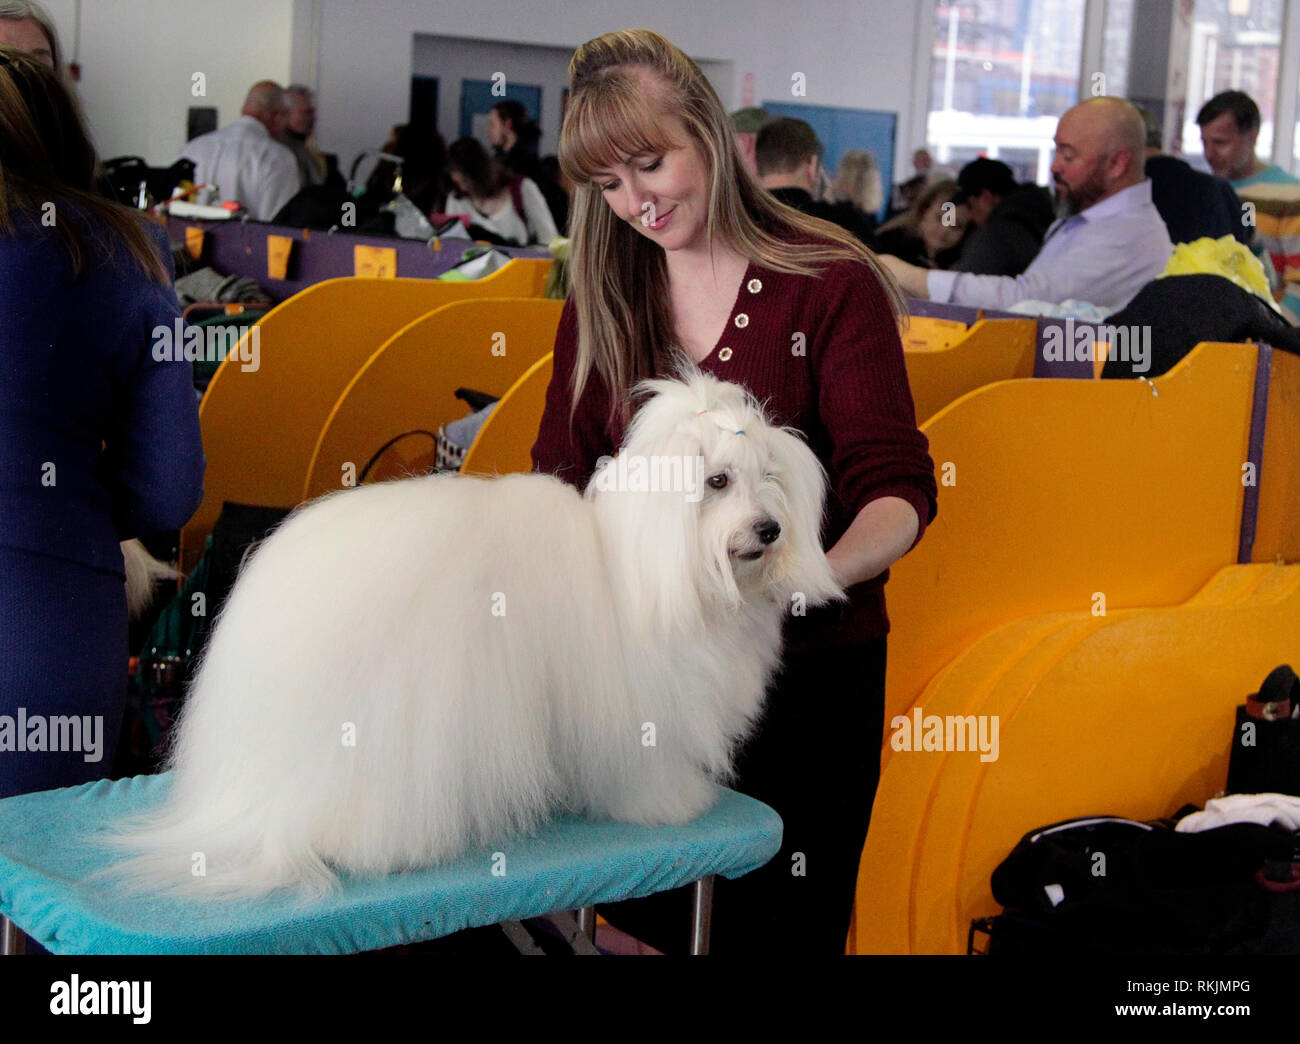 New York, United States. 11th Feb, 2019. Westminster Dog Show - New York City, 11 February, 2019: Turbo, a Coton De Tulear being groomed before the Best of Breed Competition at the 143rd Annual Westminster Dog Show in New York City. Credit: Adam Stoltman/Alamy Live News Stock Photo